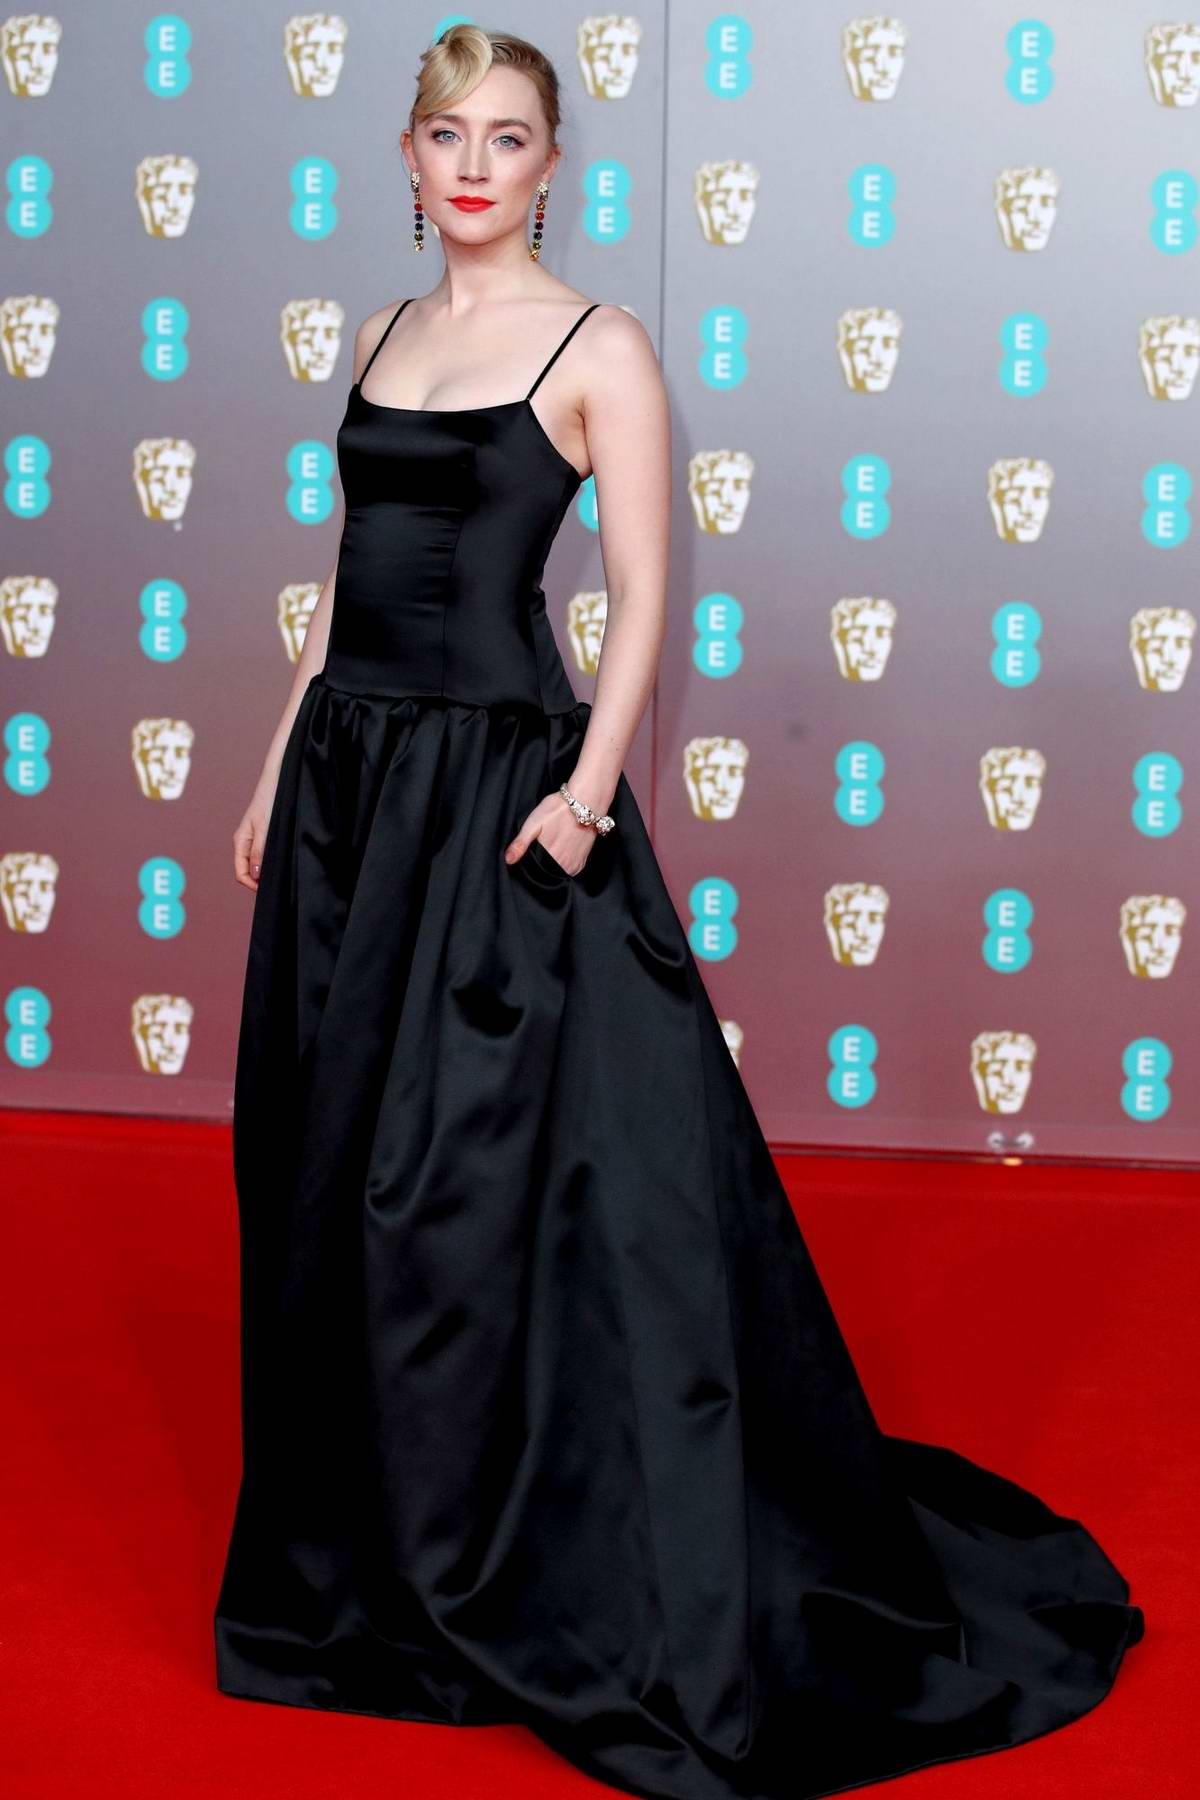 Saoirse Ronan attends the 73rd EE British Academy Film Awards at Royal Albert Hall in London, UK